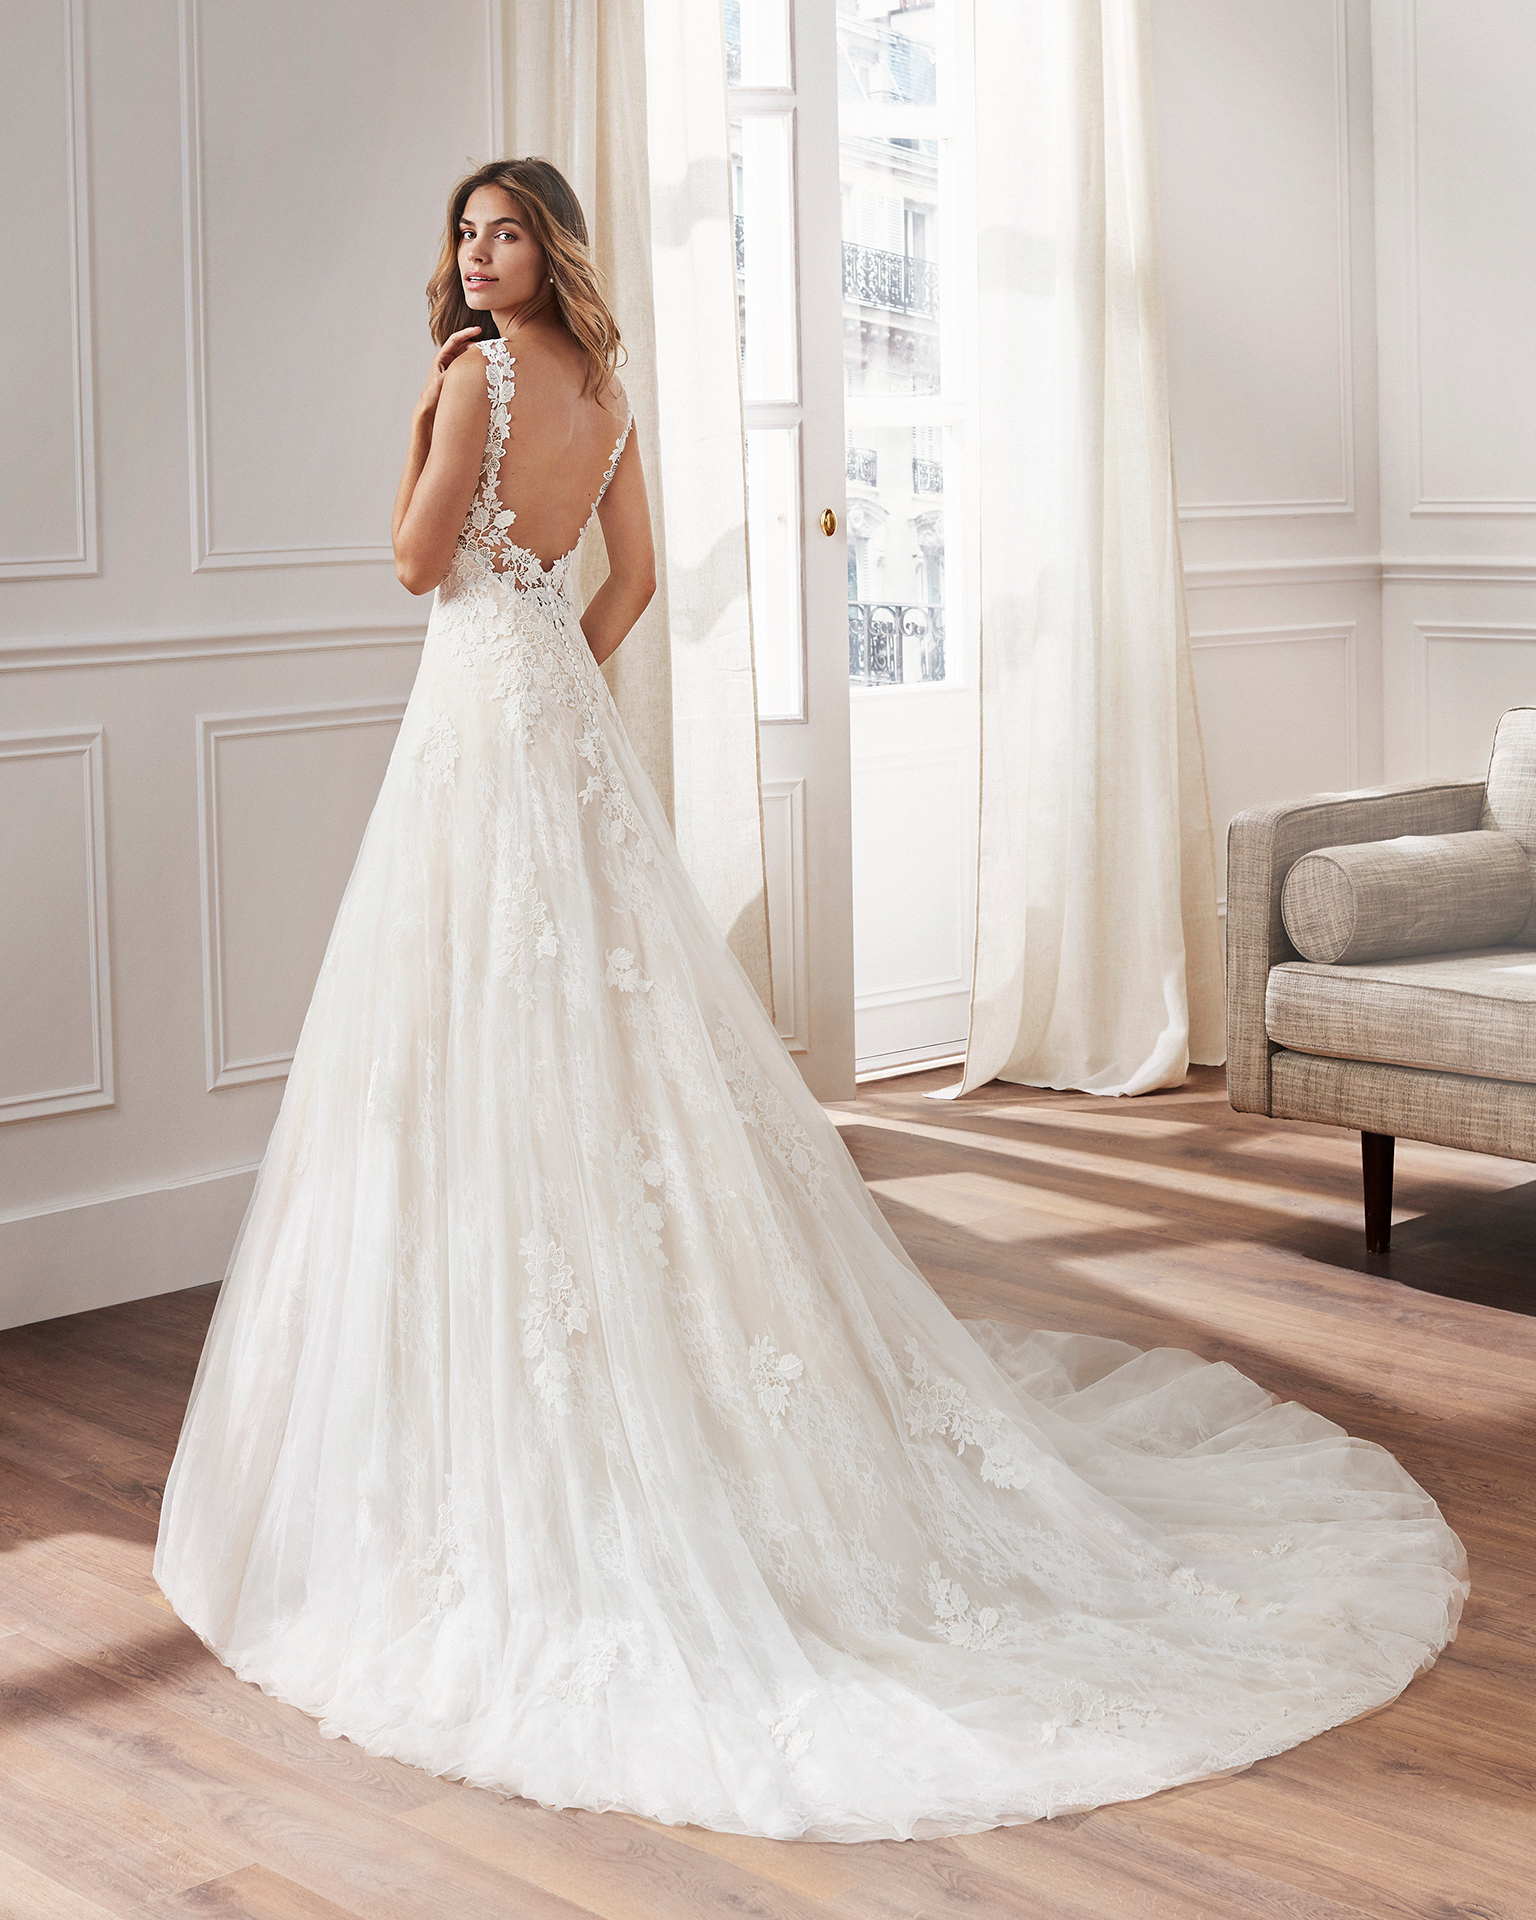 Ballgown-style wedding dress in lace. Sweetheart neckline, straps and appliquéd skirt. Available in natural and natural/nude. 2019  Collection.